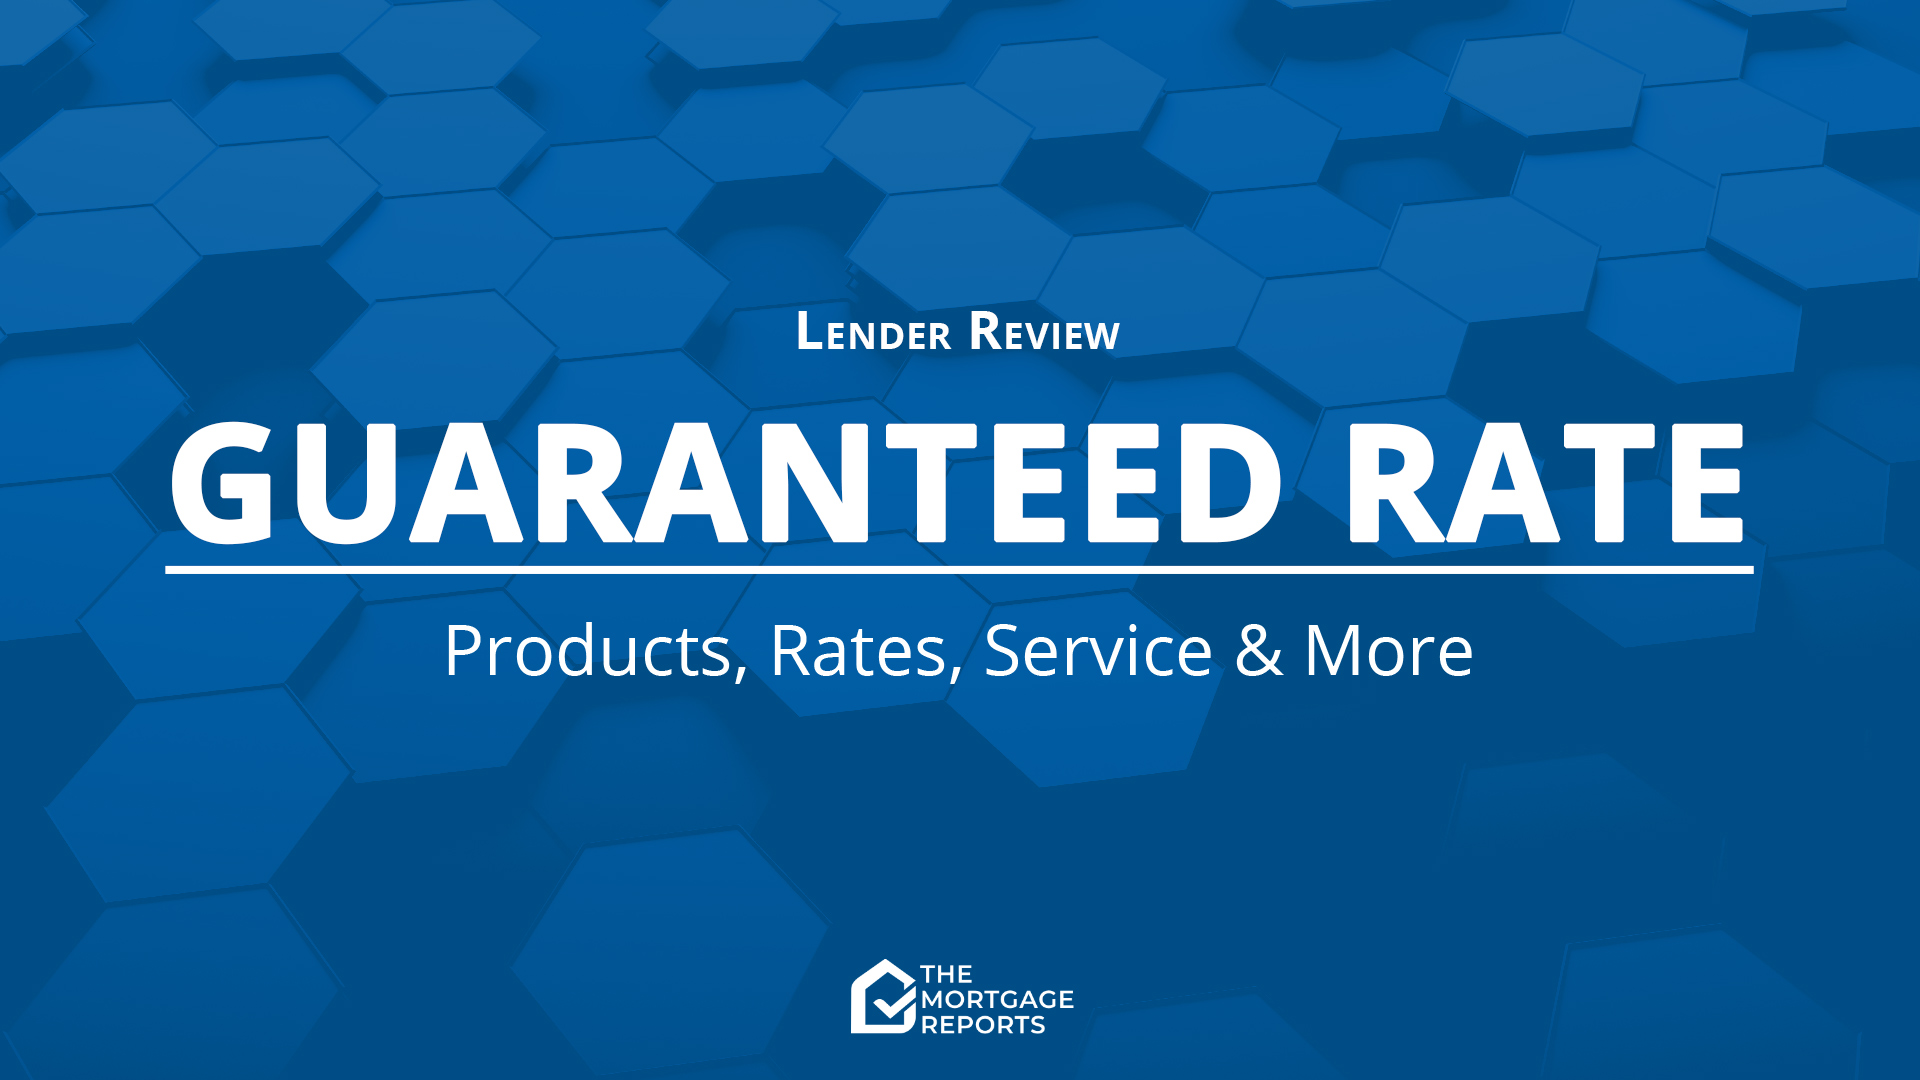 Guaranteed Rate Mortgage Lender Review for 2020 | Mortgage Rates, Mortgage News and Strategy